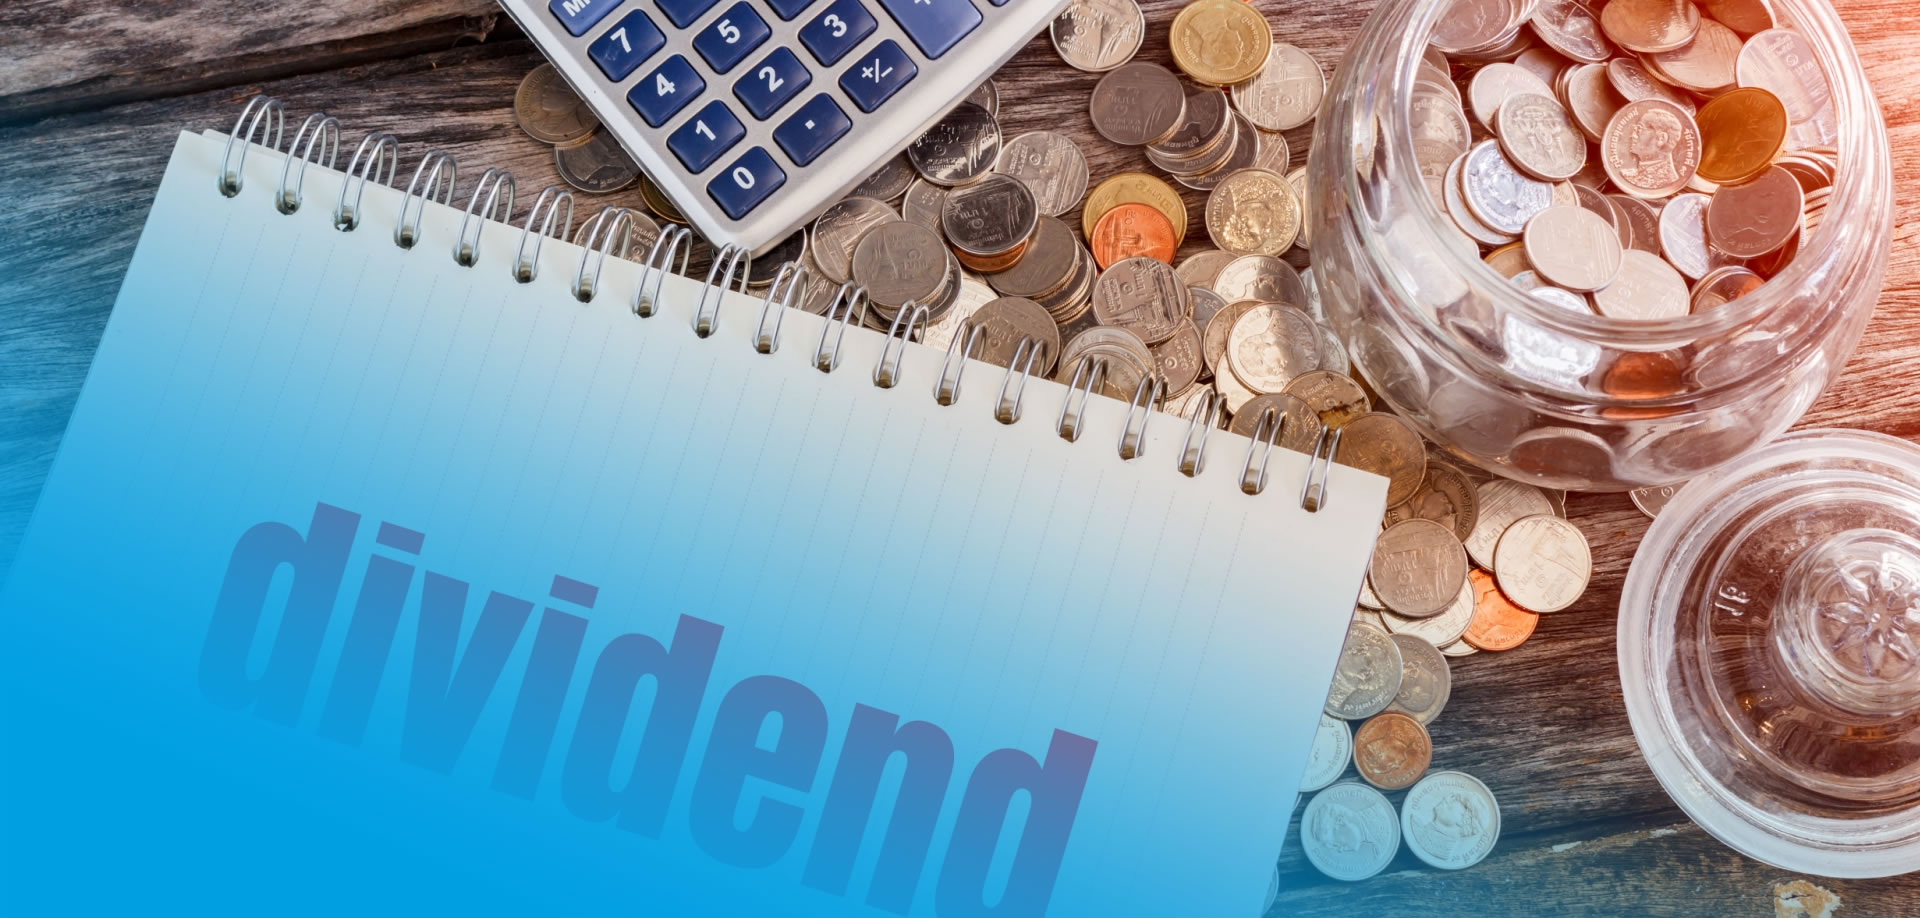 Guide to tax dividends clearsky business yelopaper Choice Image